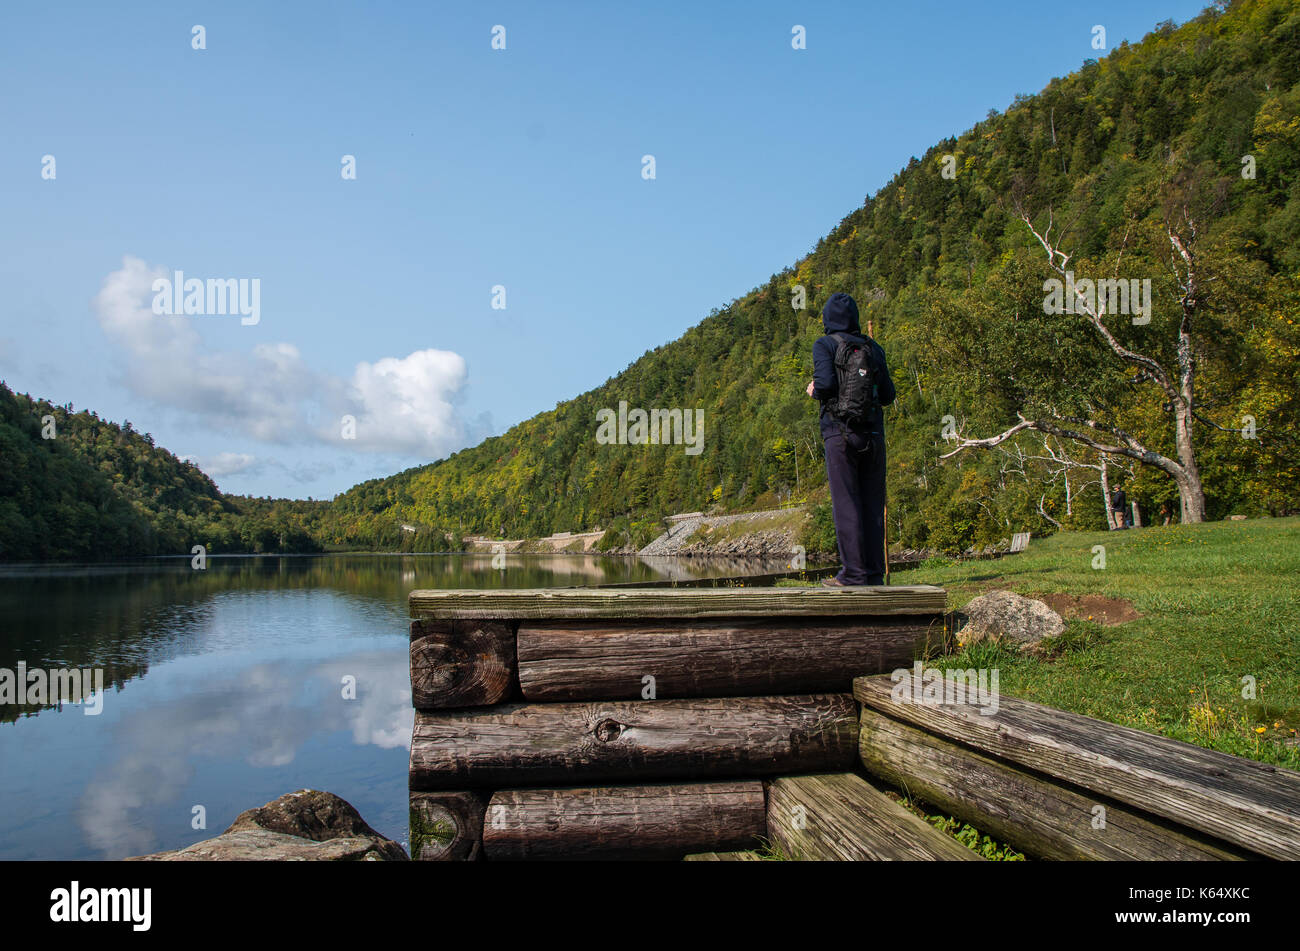 New york essex county keene - Hiker Looking Across The Lower Cascade Lake In Keene New York Stock Image